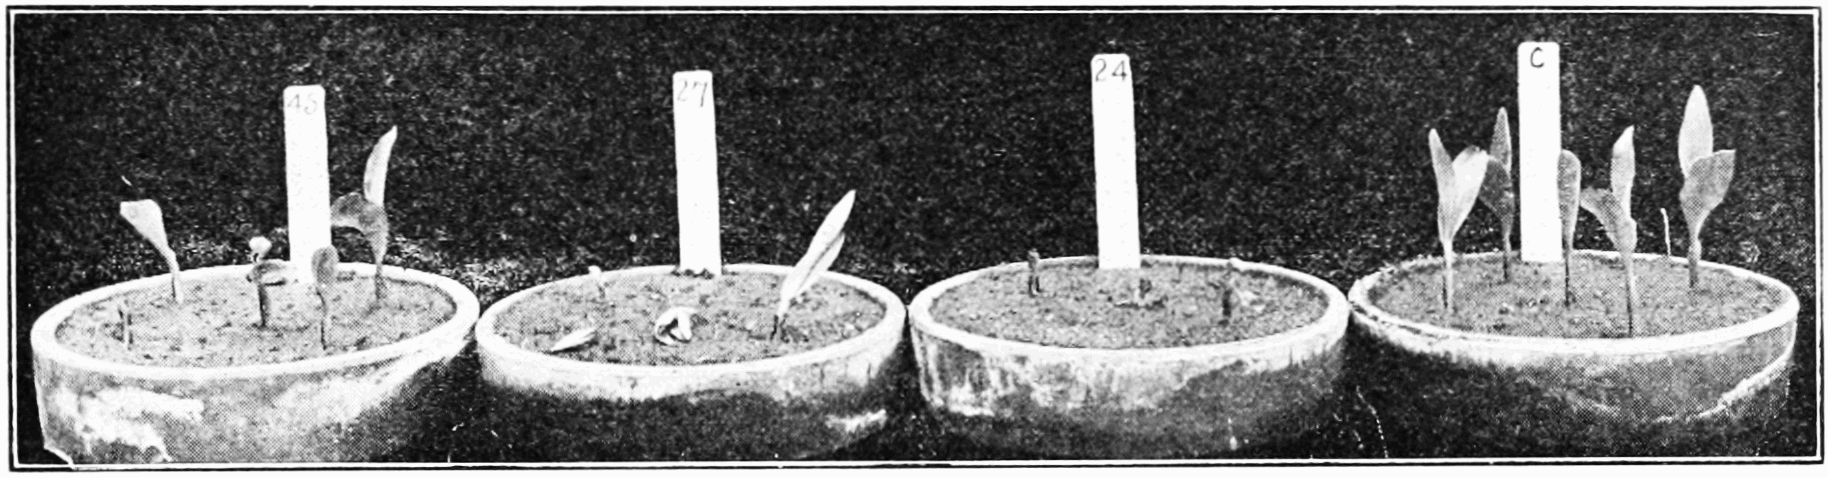 PSM V74 D235 Radium bromide may effect gravity effect on seed growth.png